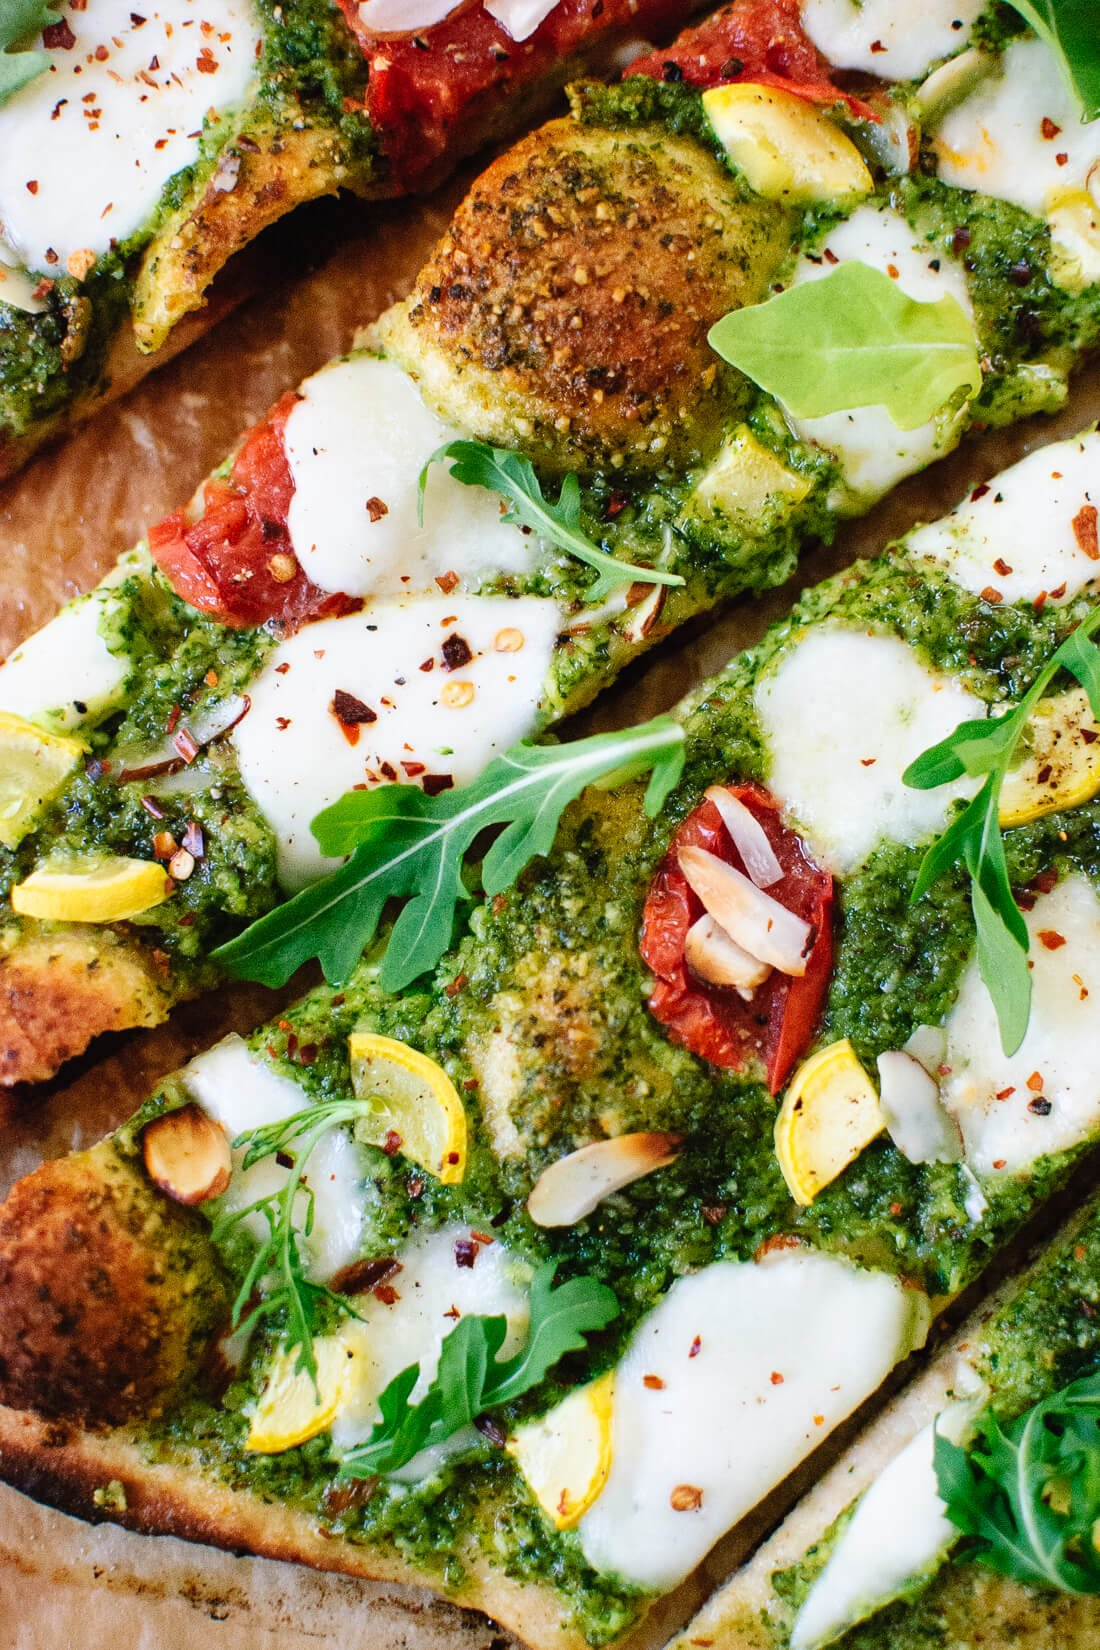 Summertime arugula-almond pesto pizza with a simple whole wheat crust